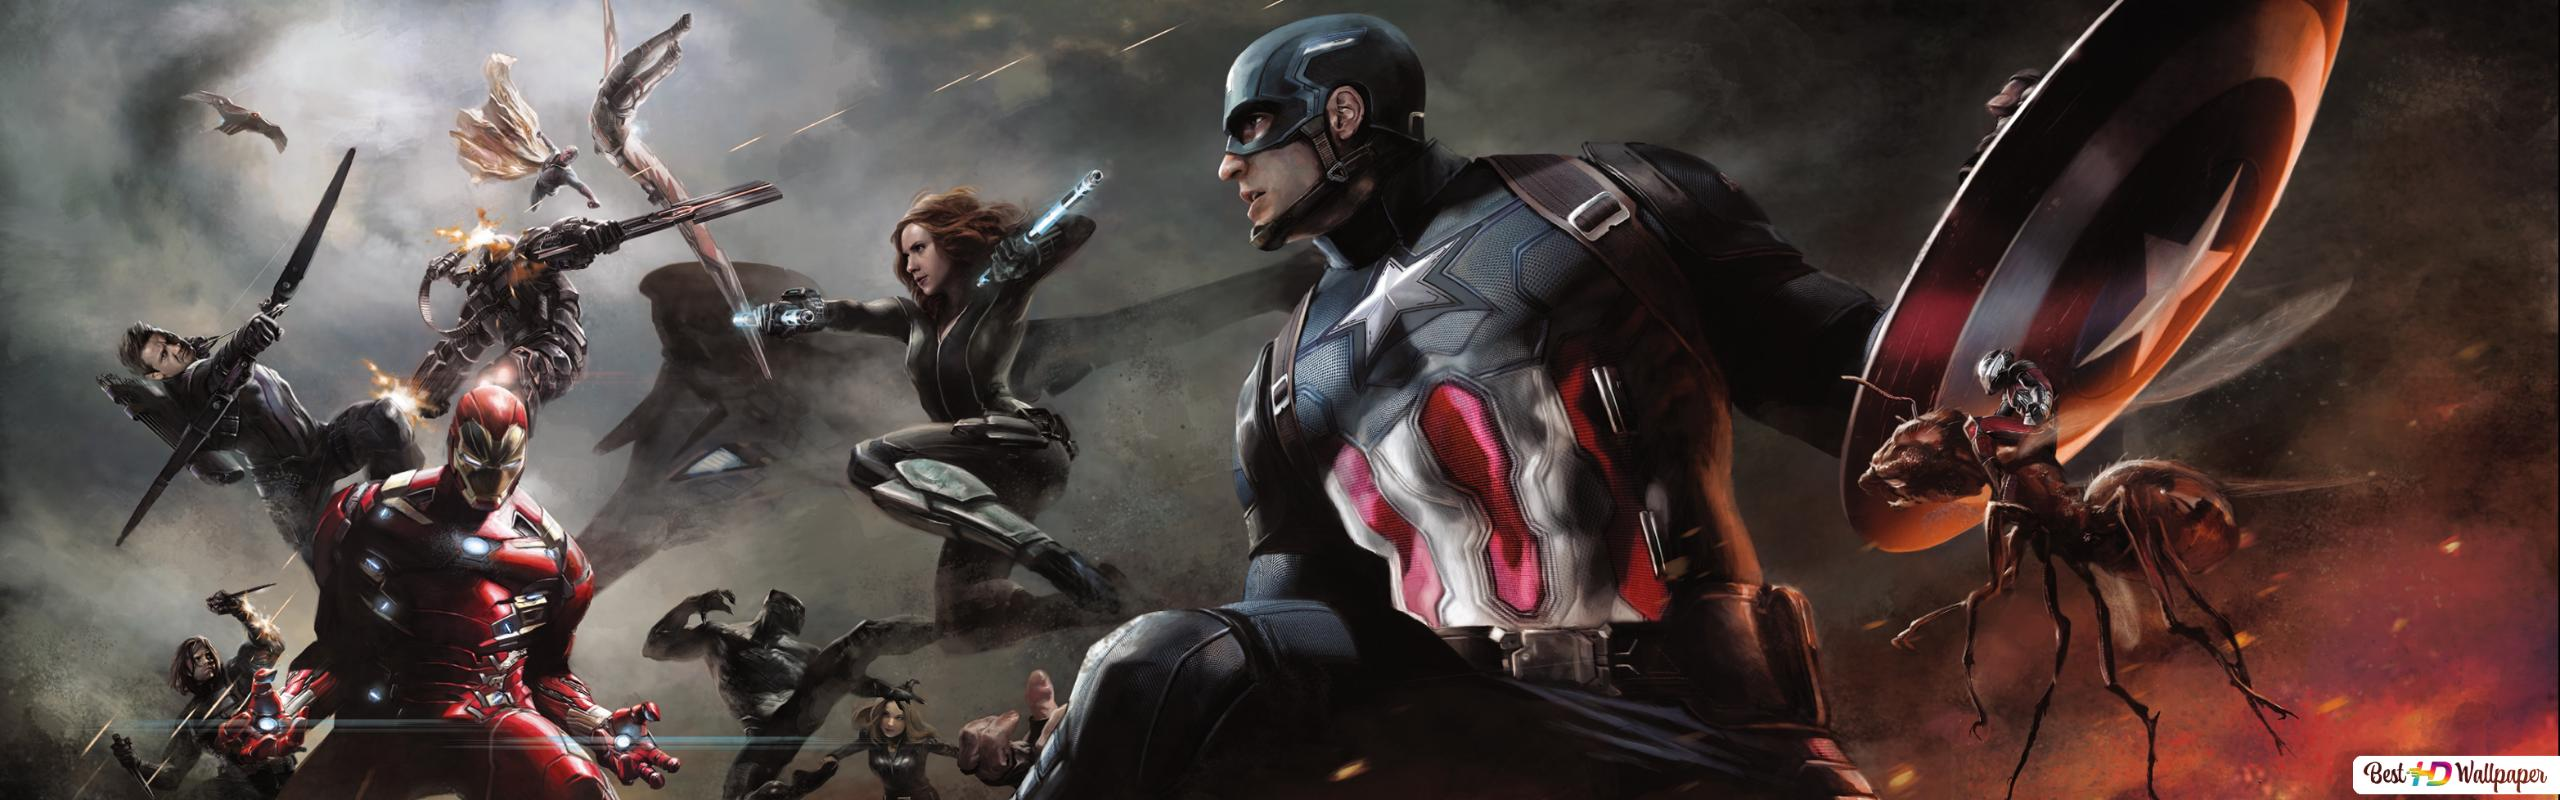 Captain America Civil War Heroes Battle Hd Wallpaper Download